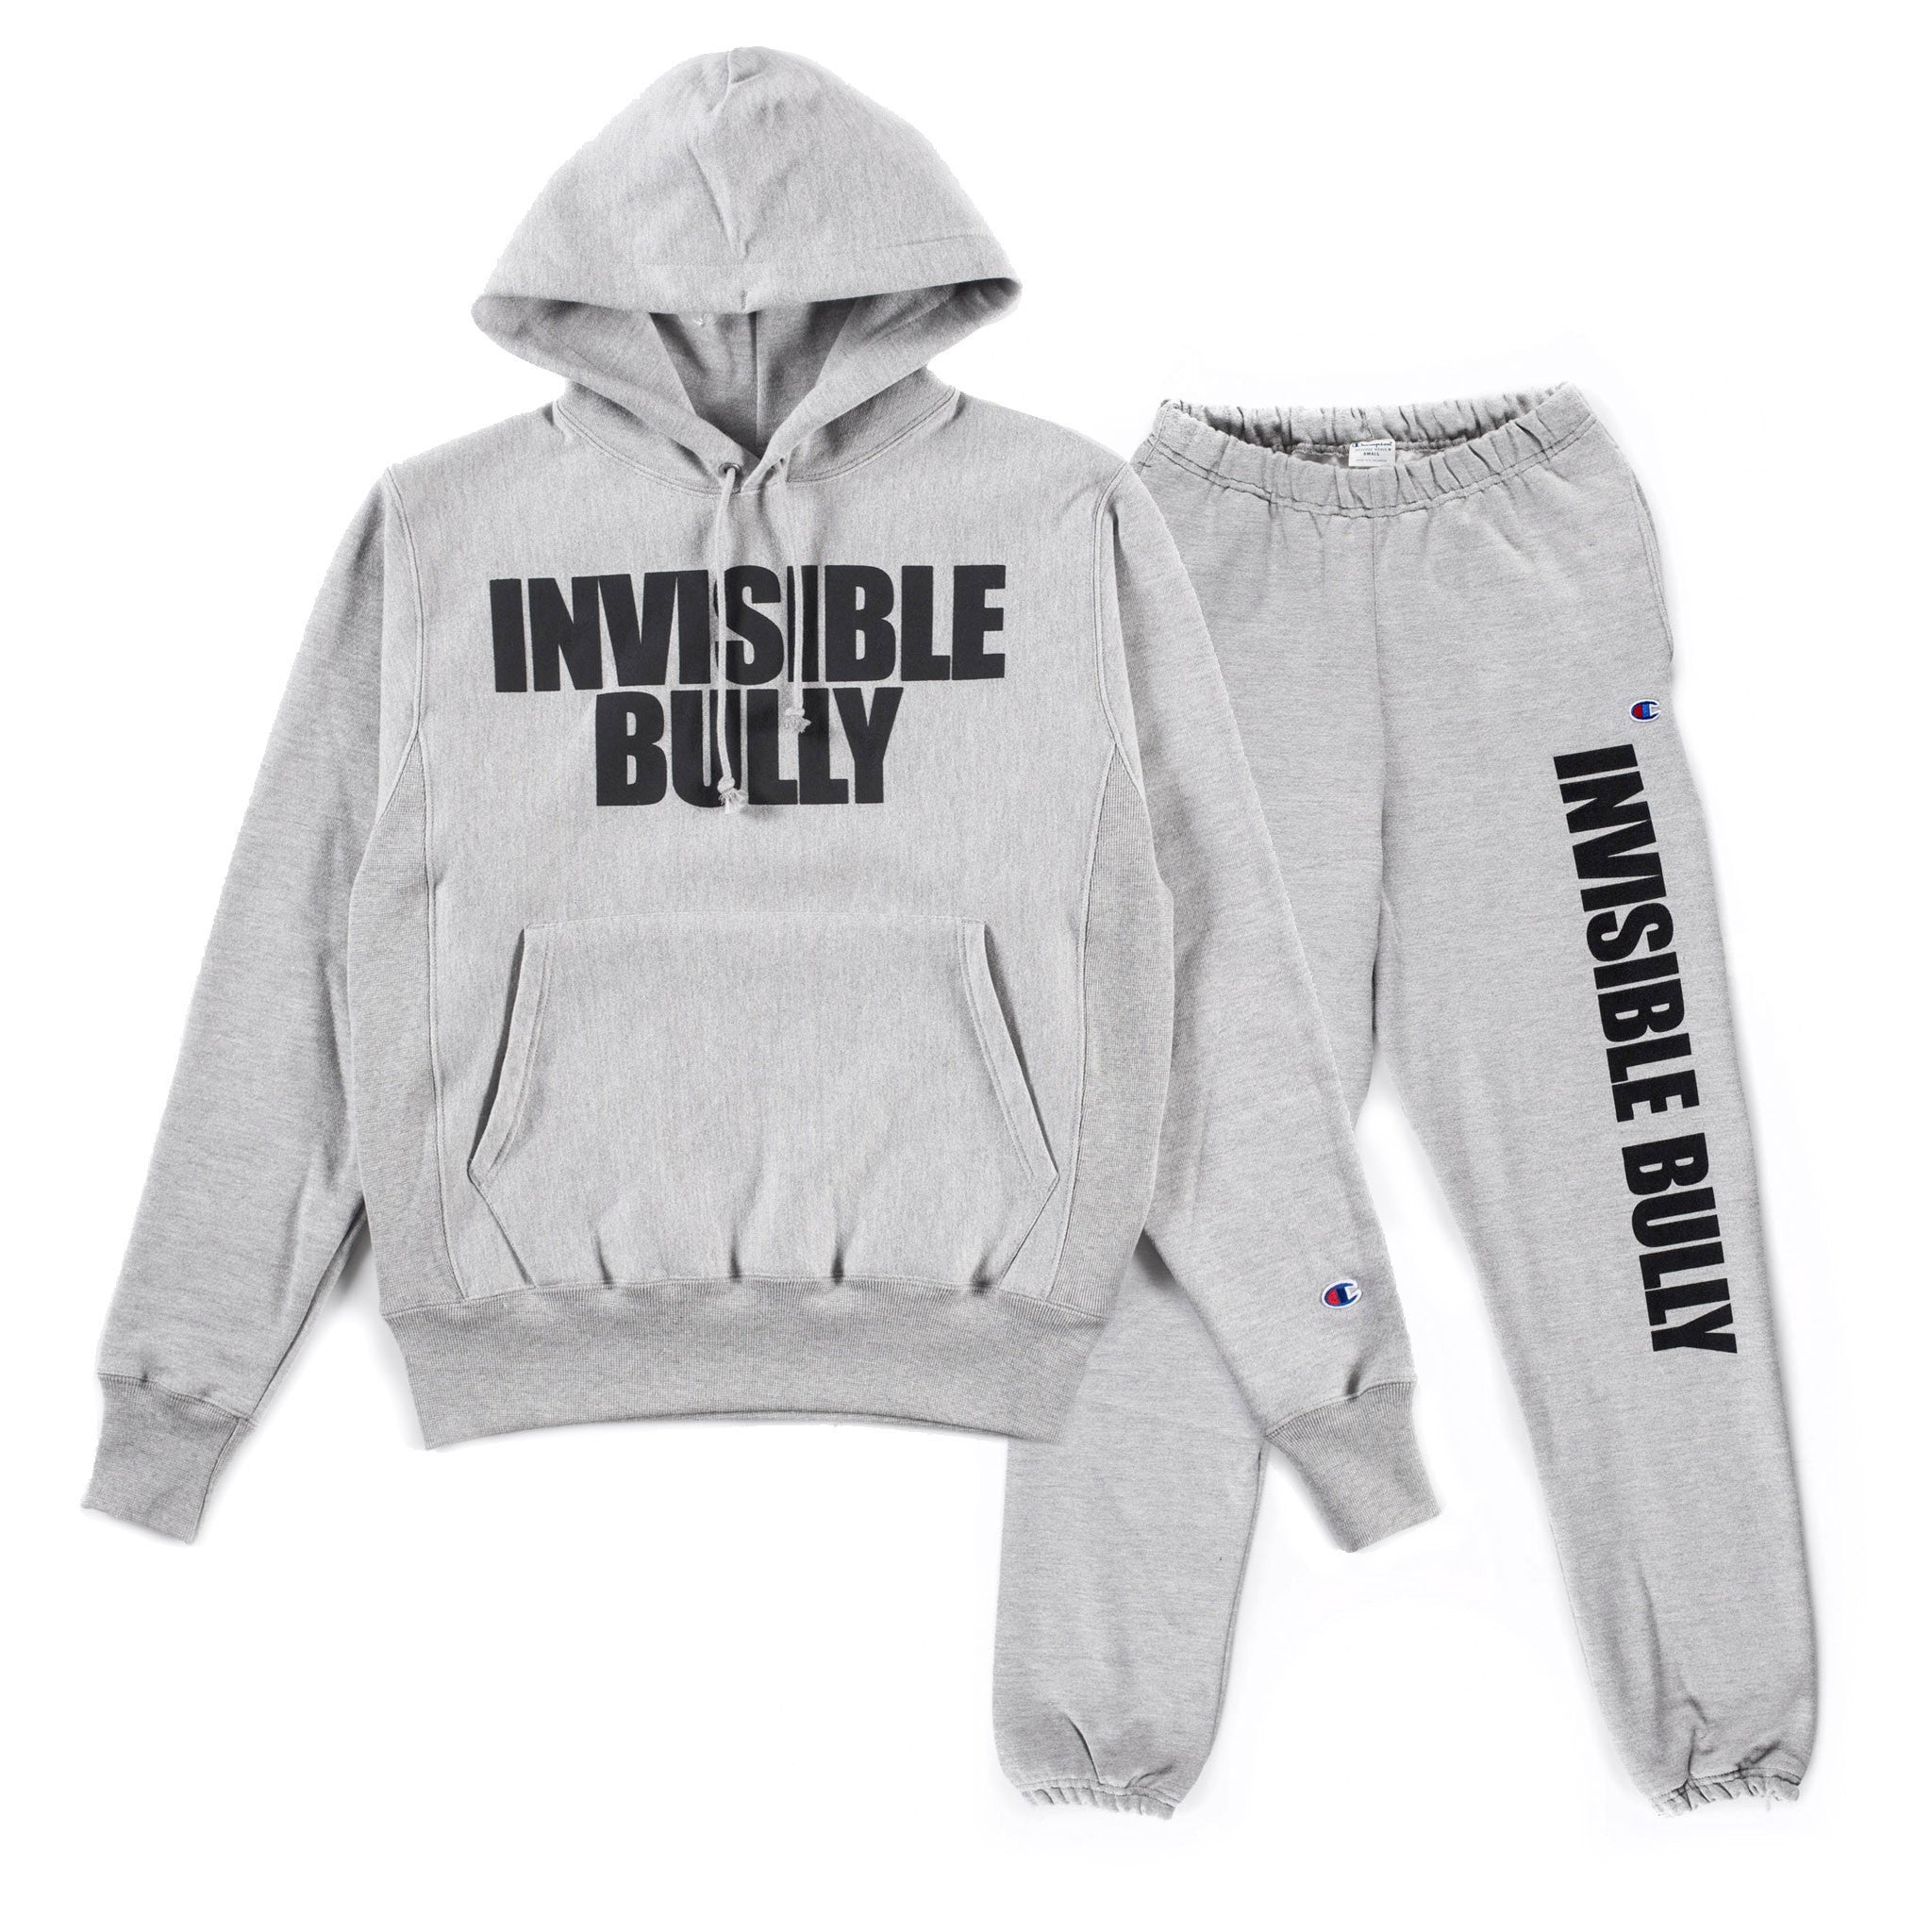 Invisible Bully x Champion Sweatsuit (Oxford Grey)